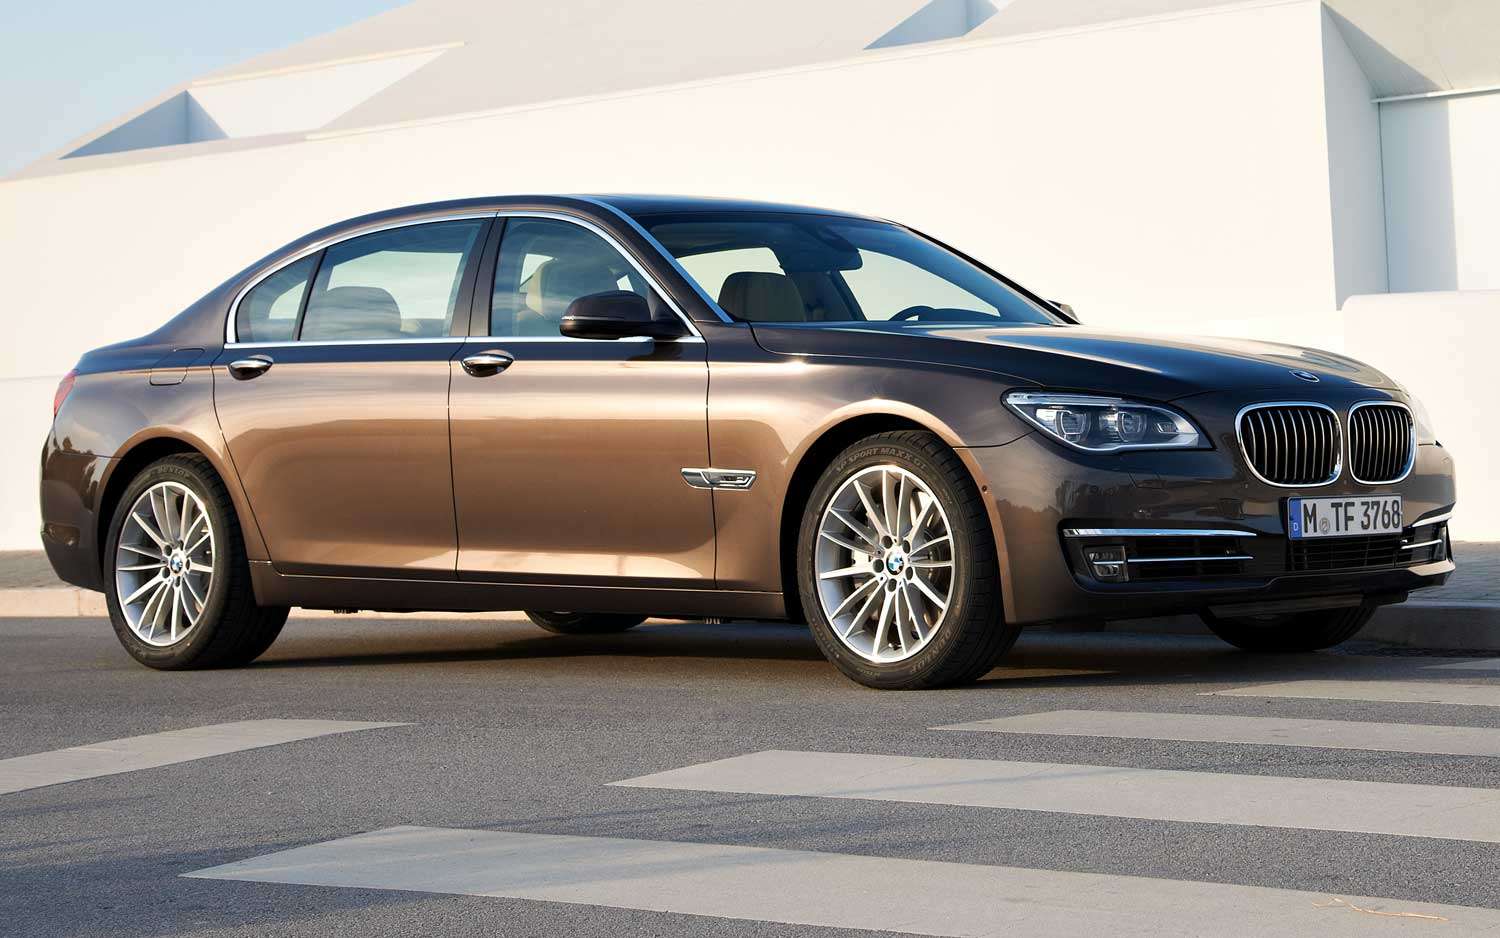 Refreshed 2013 BMW 7 Series Gets Updated Engines 750i Has 445 HP And 8A